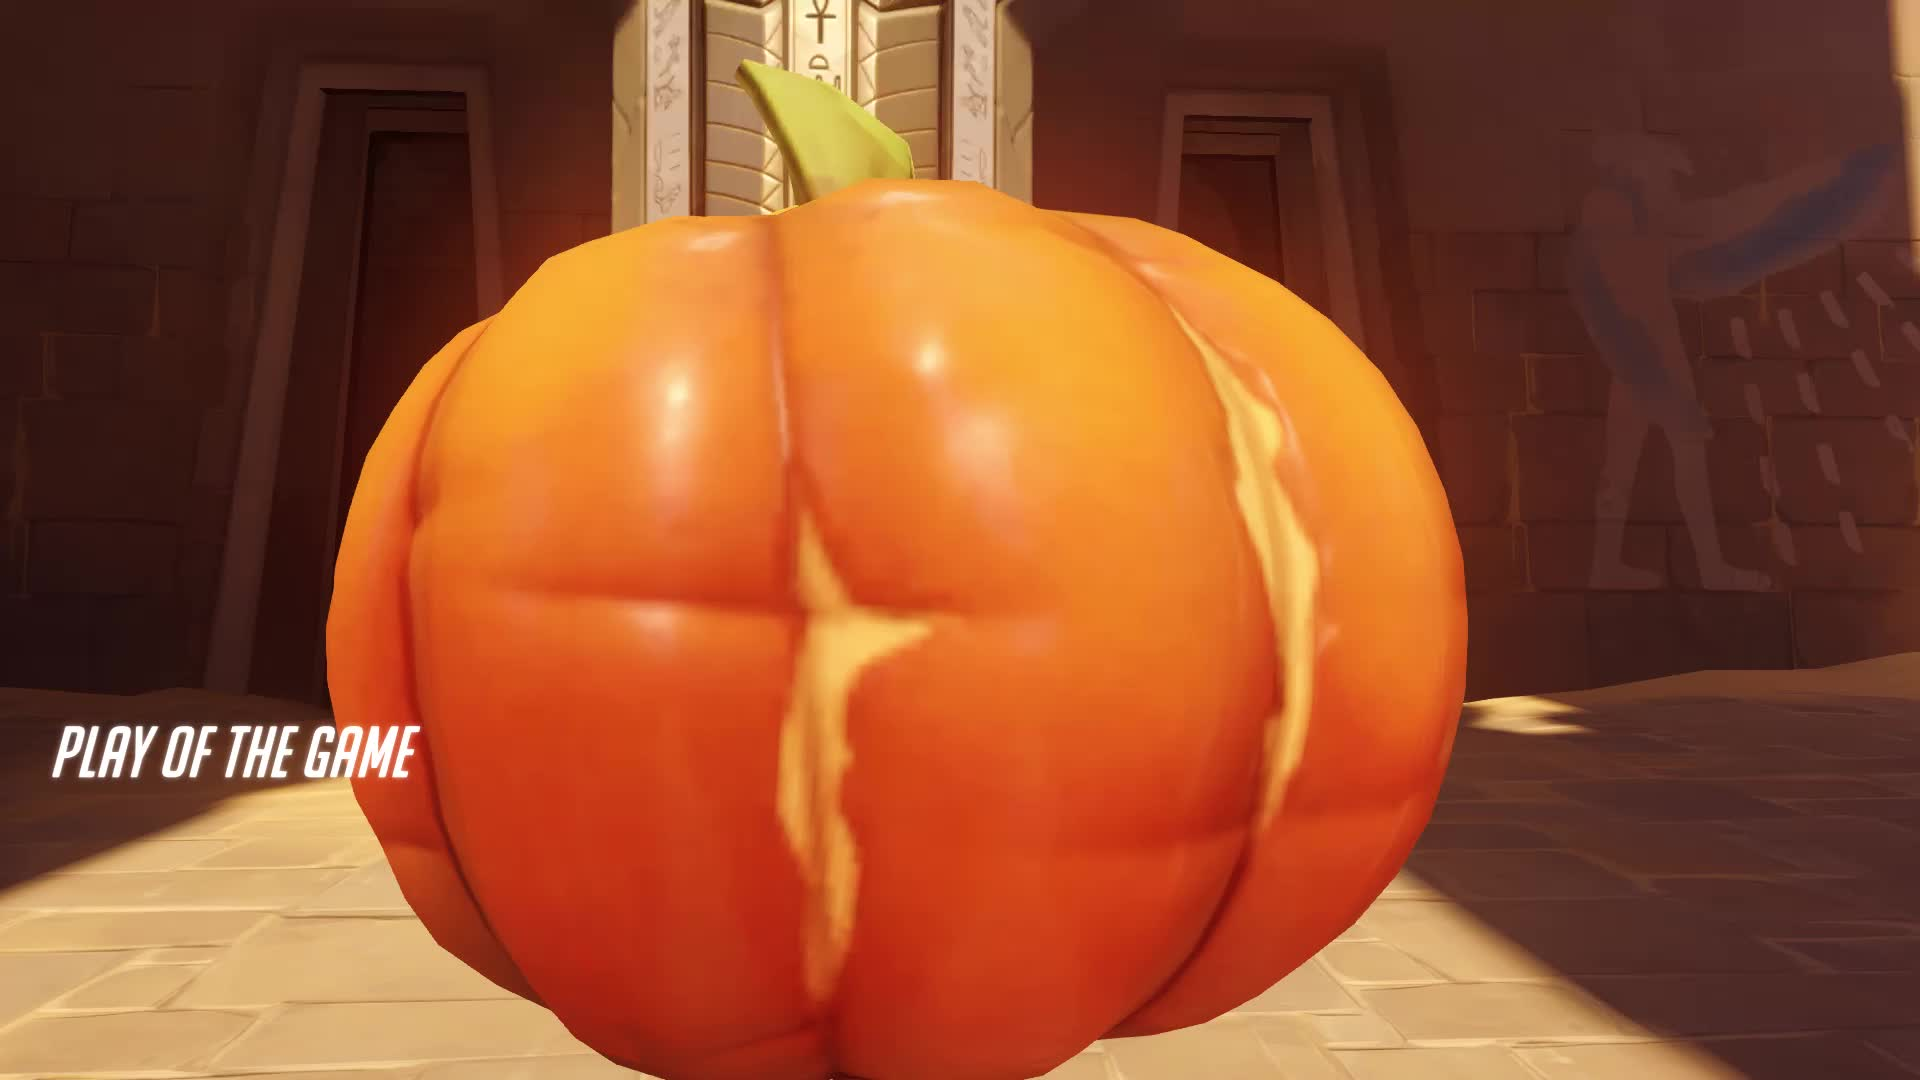 game, gameplay, gamergirl, games, genji, genjimain, genjiplay, overwatch, potg, qp, thicc, ultimate, ma nemoj genji GIFs